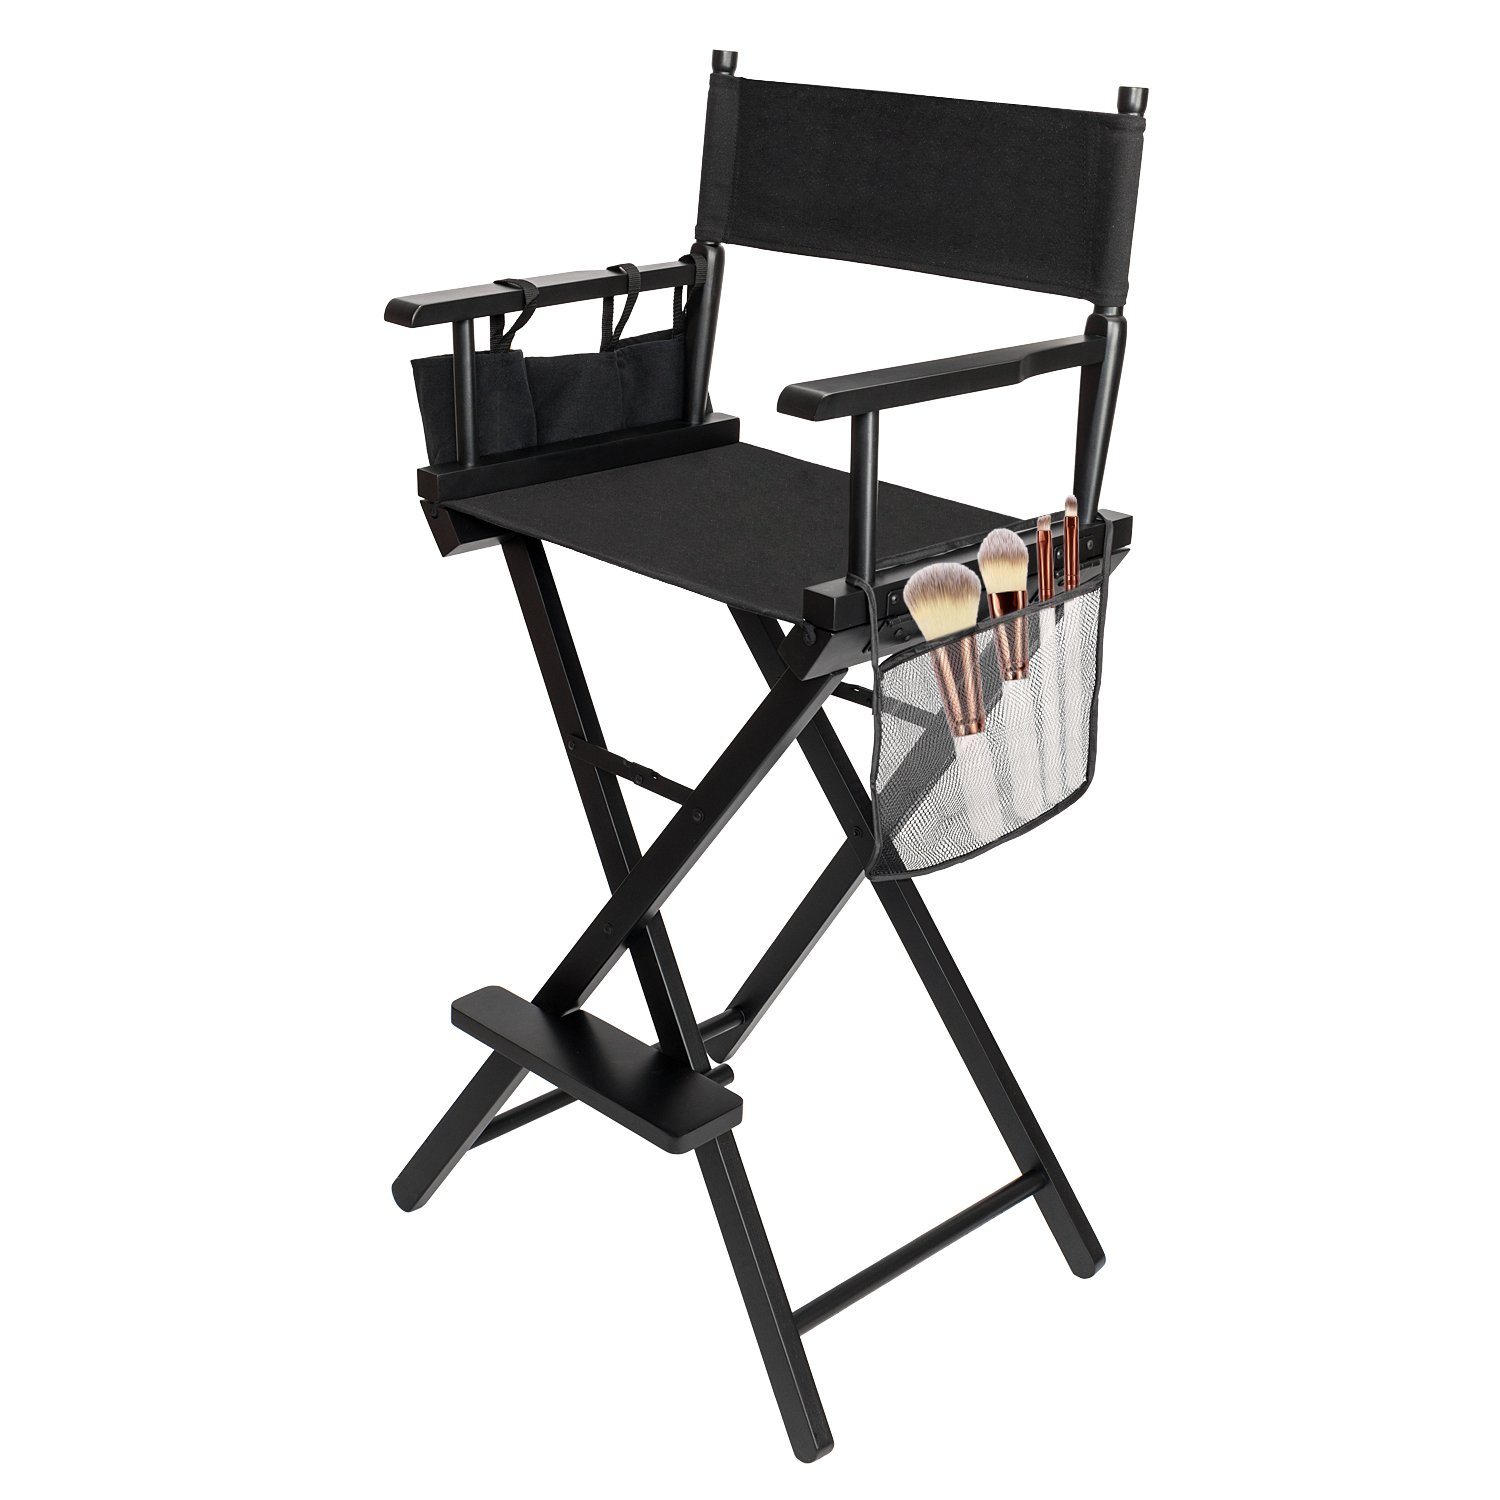 Kuyal Director's Chair 32'' Height Tall Collapsible Portable Solid Hardwood & Polyester Makeup Artist Chair with Side Cup Holder, Side Storage Bag, Footrest, Black by Kuyal